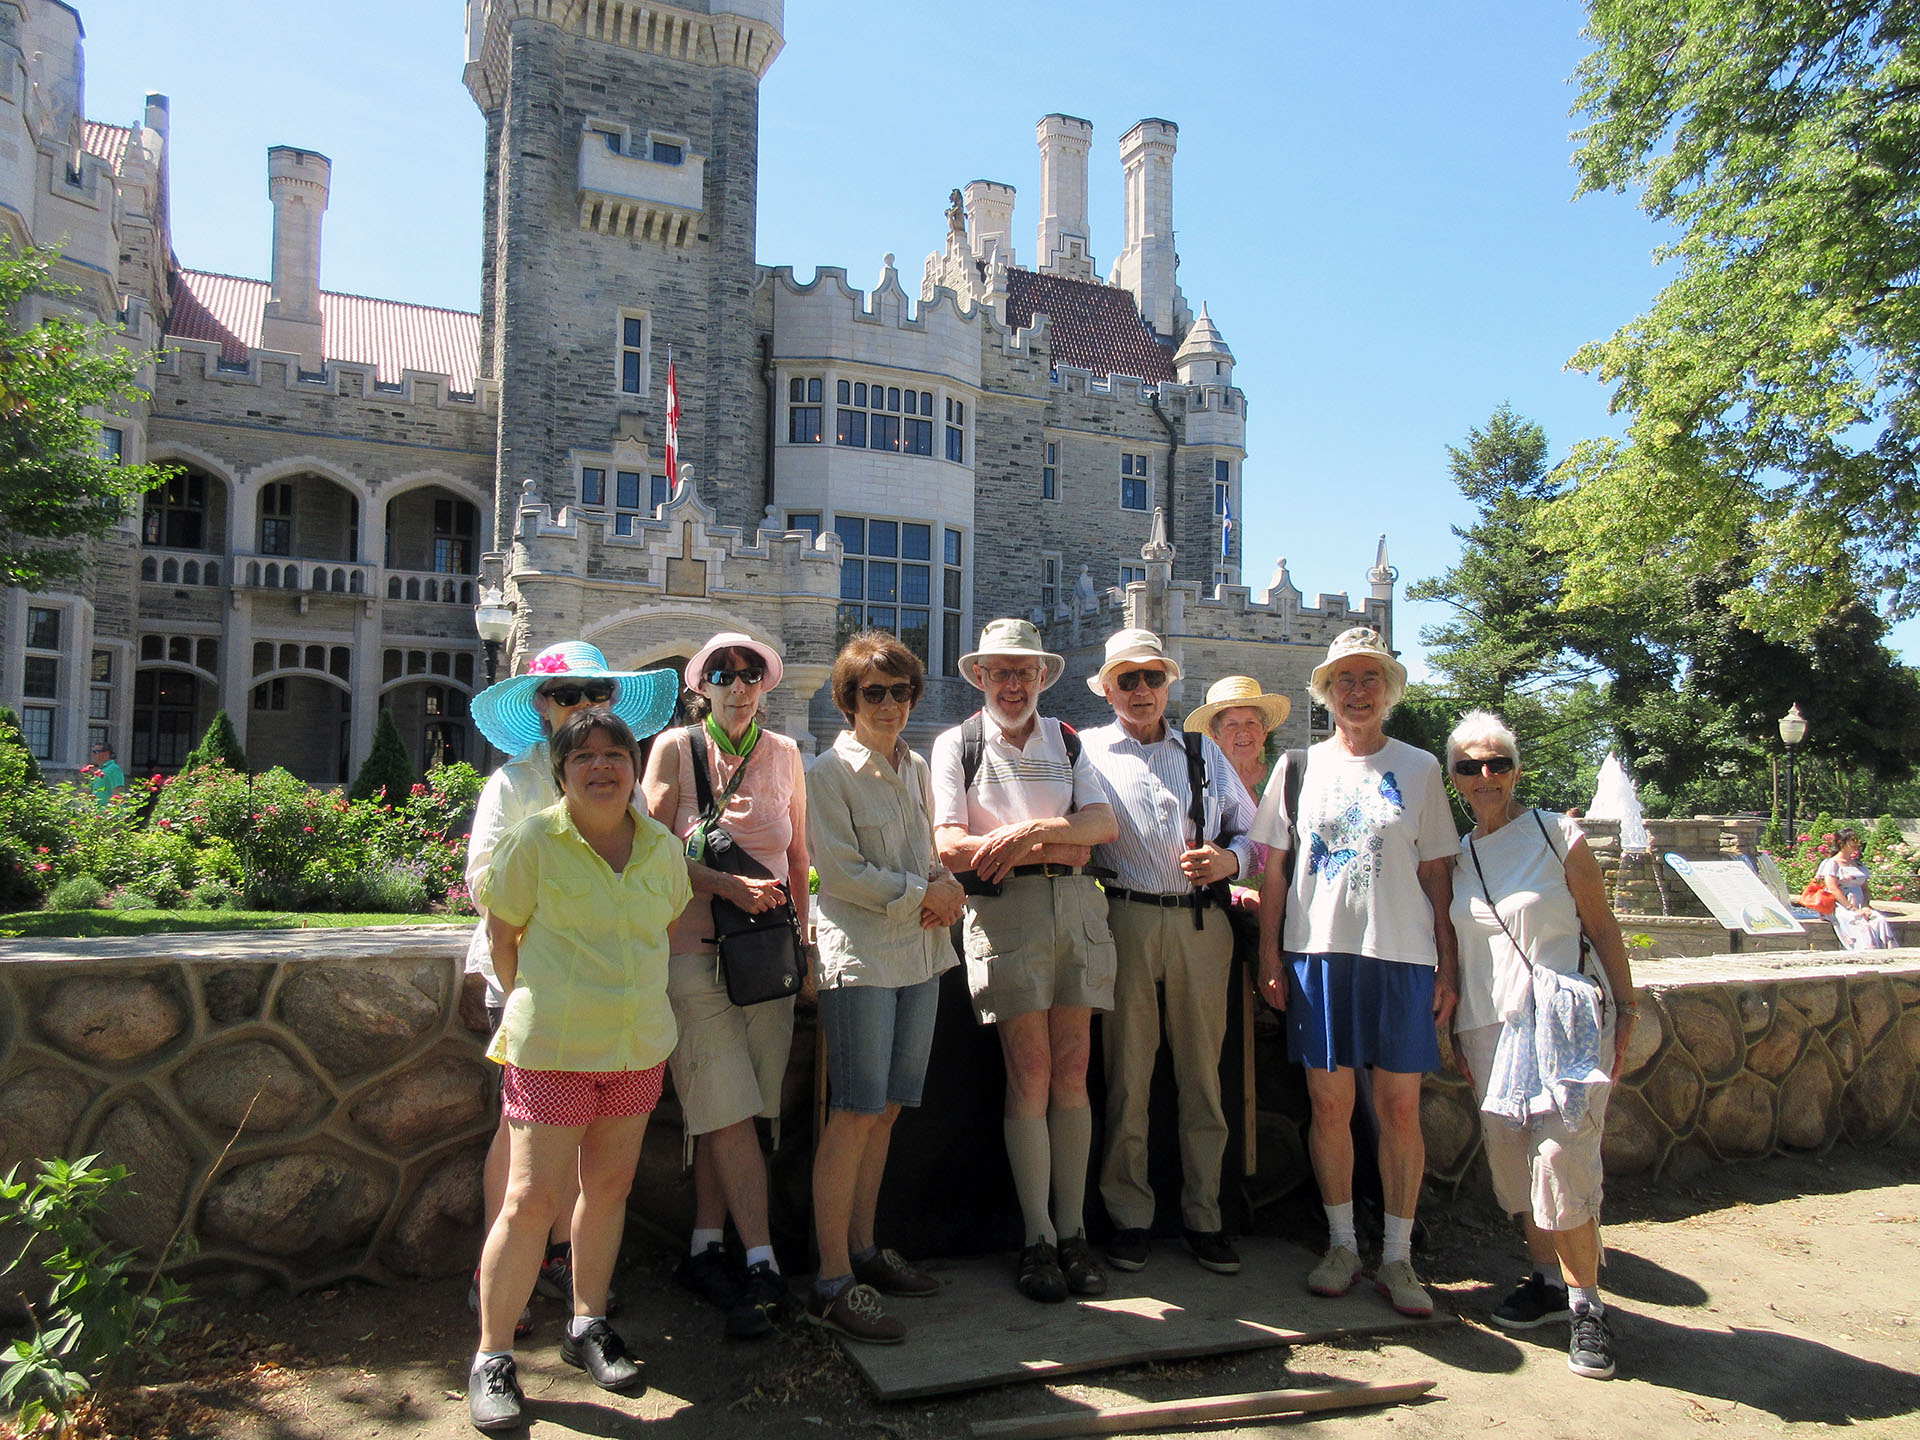 Hot but triumphant walkers storm the castle